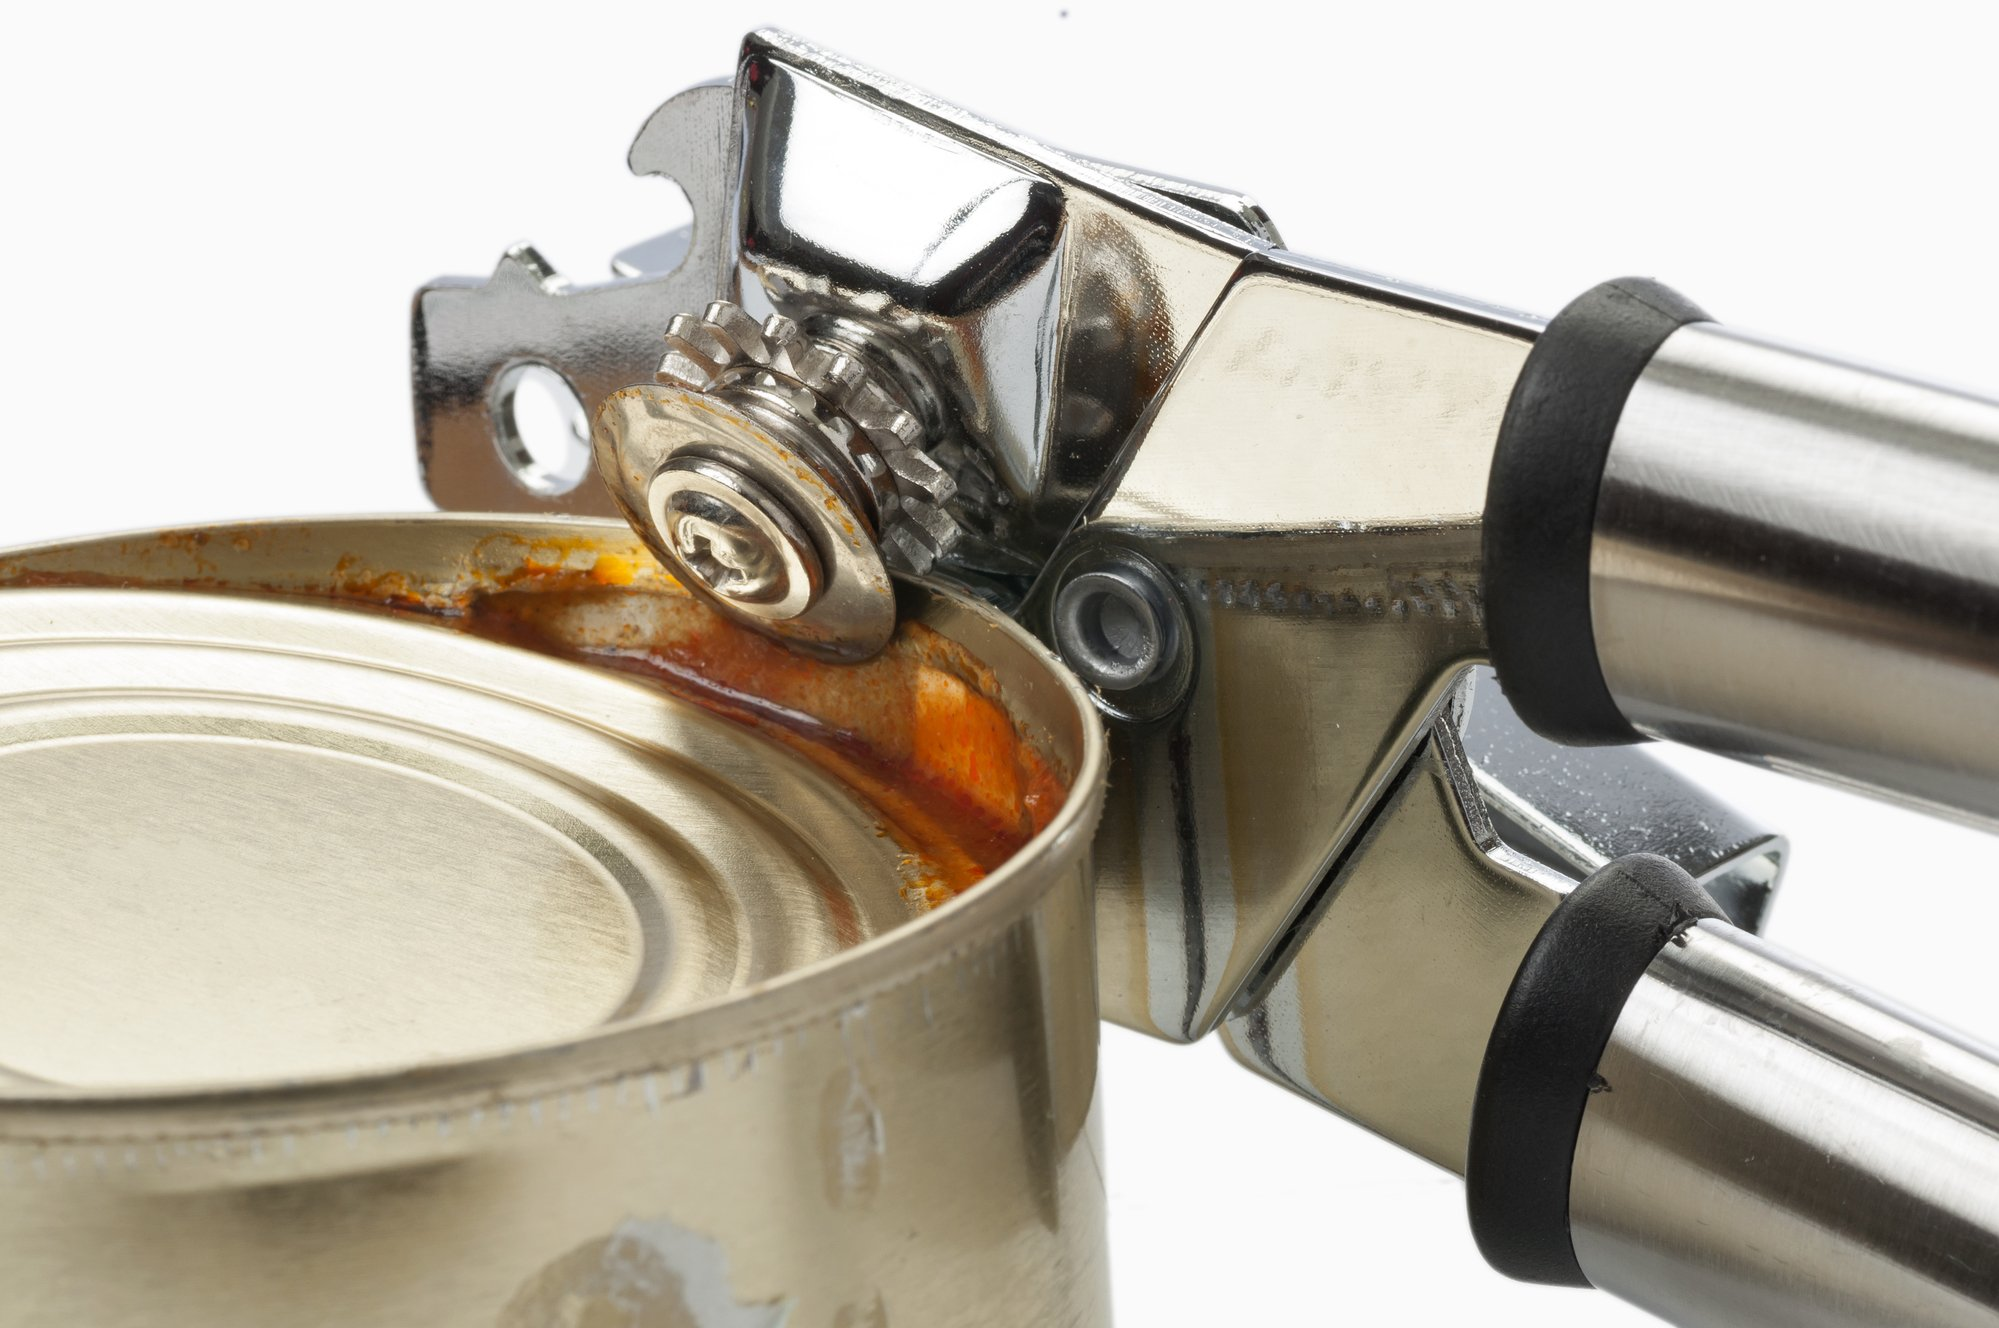 manual can opener (top cutter)